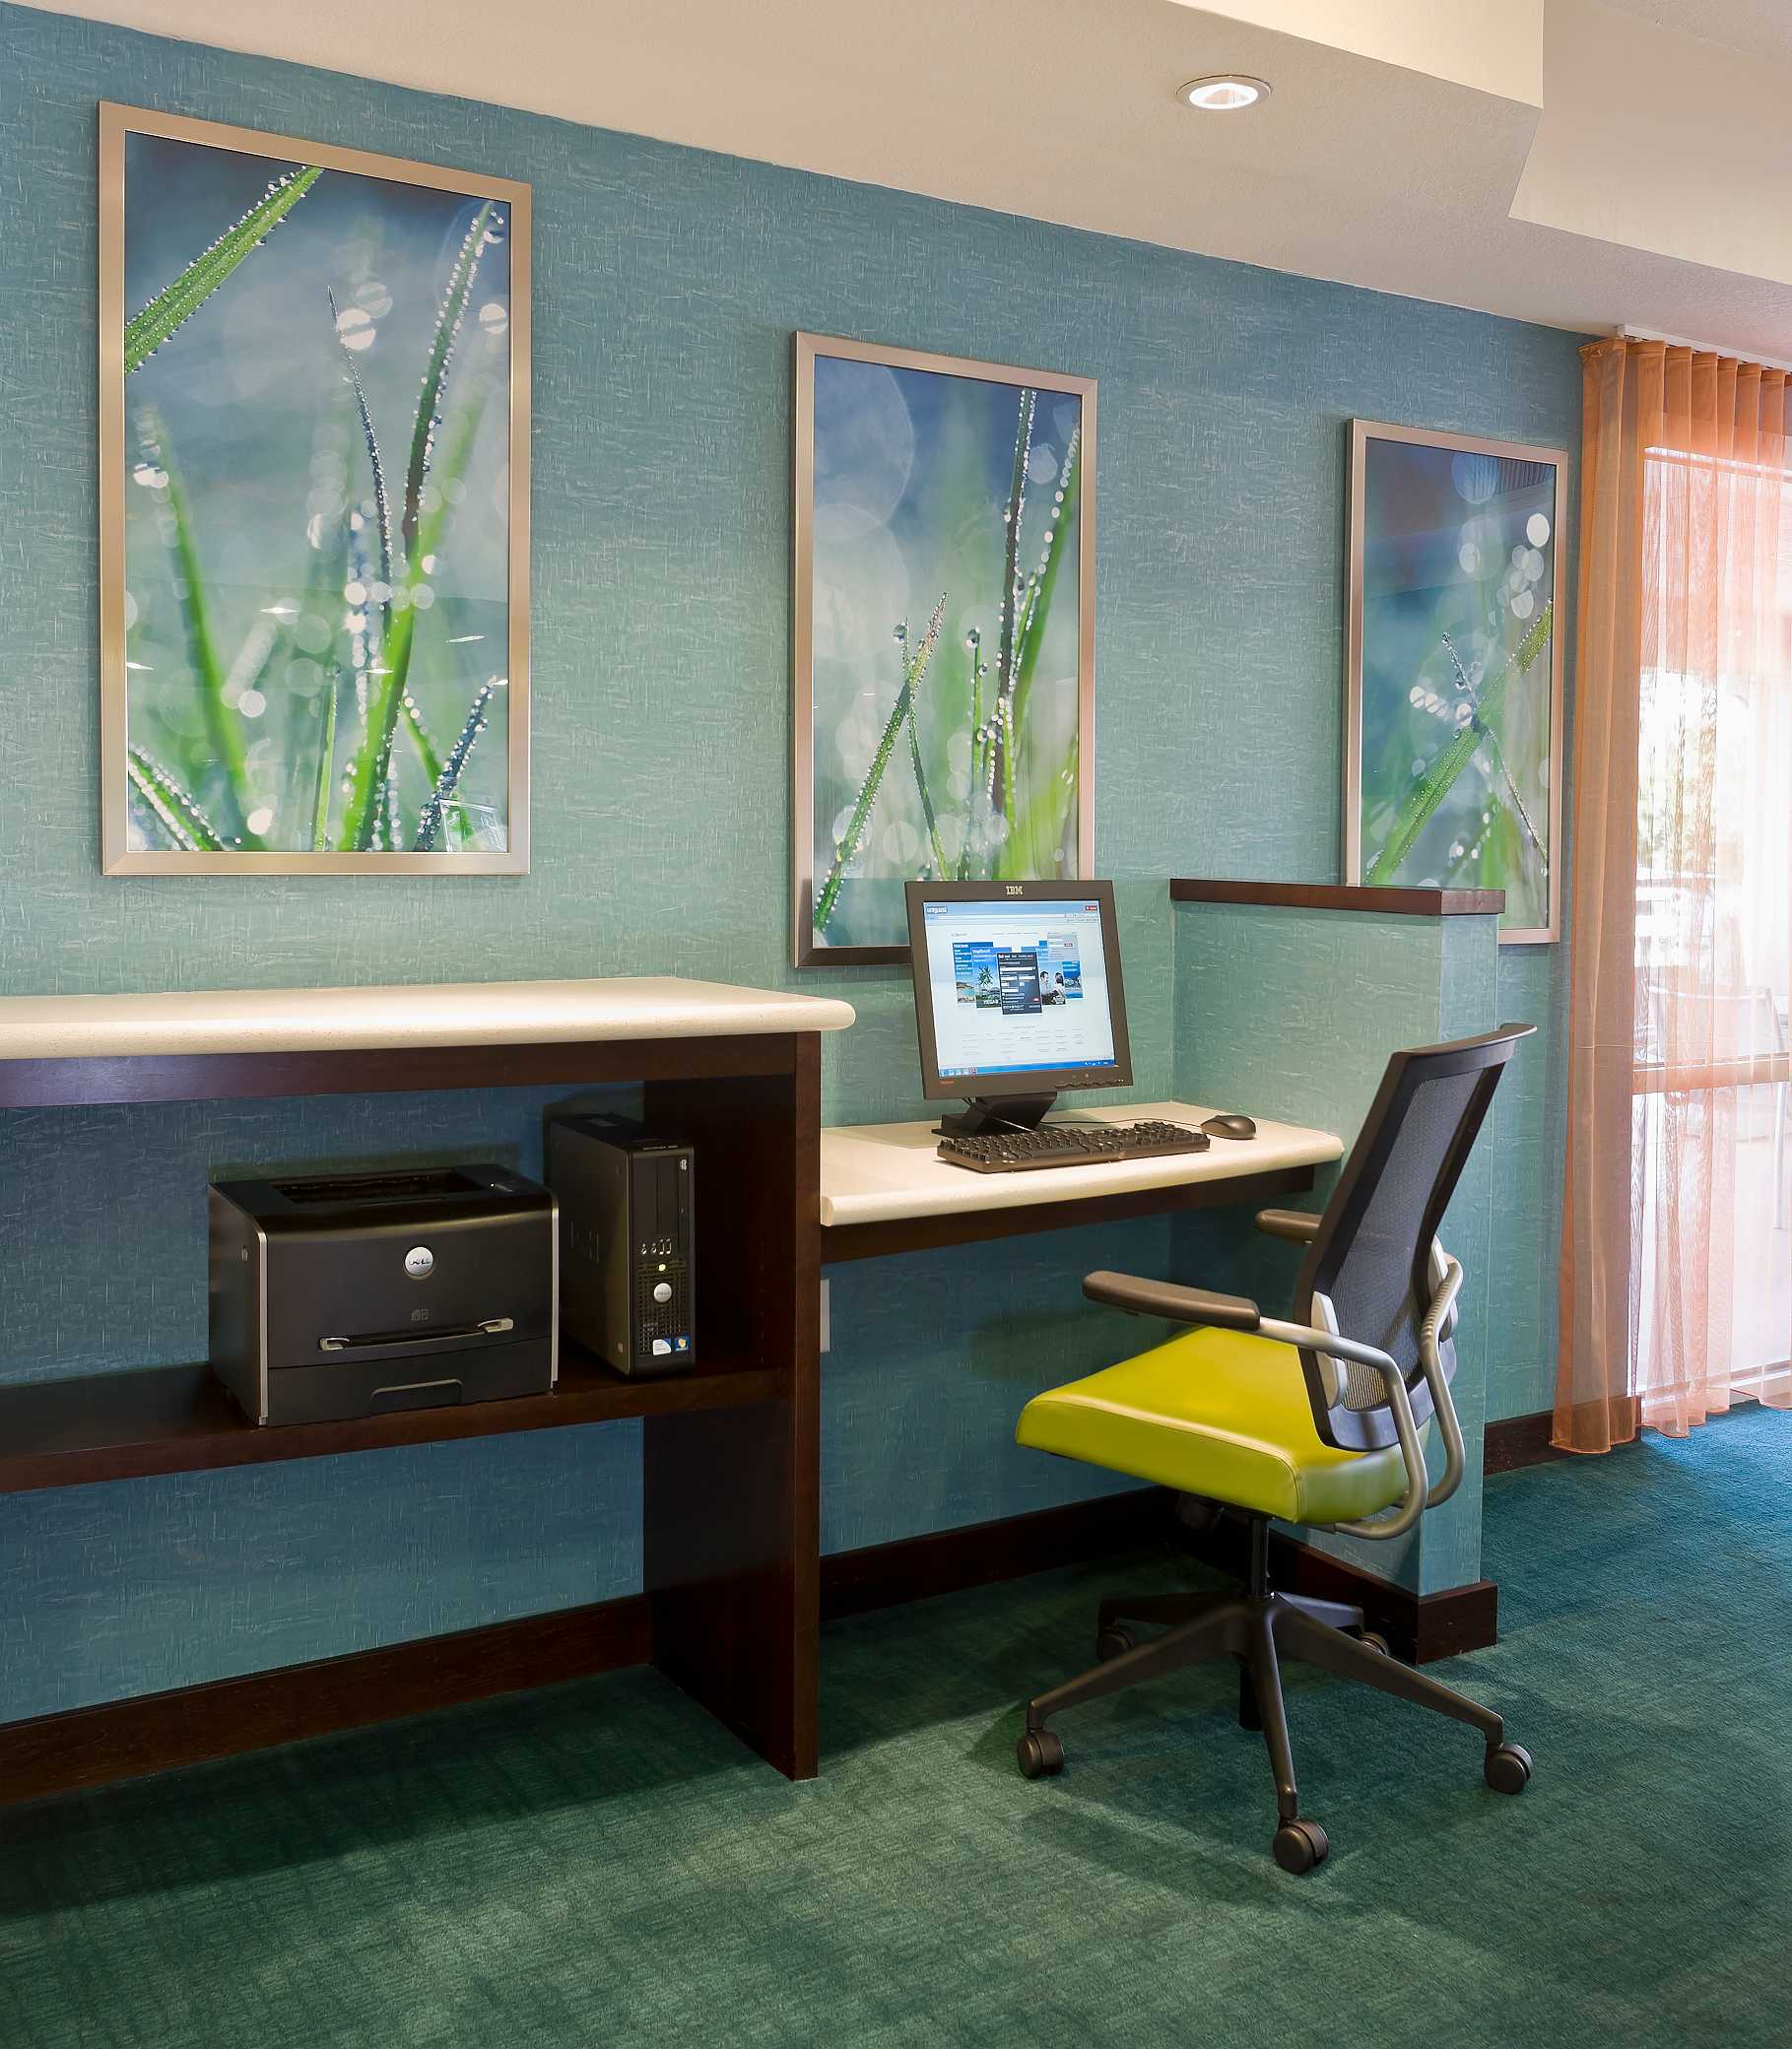 SpringHill Suites by Marriott Phoenix North image 15